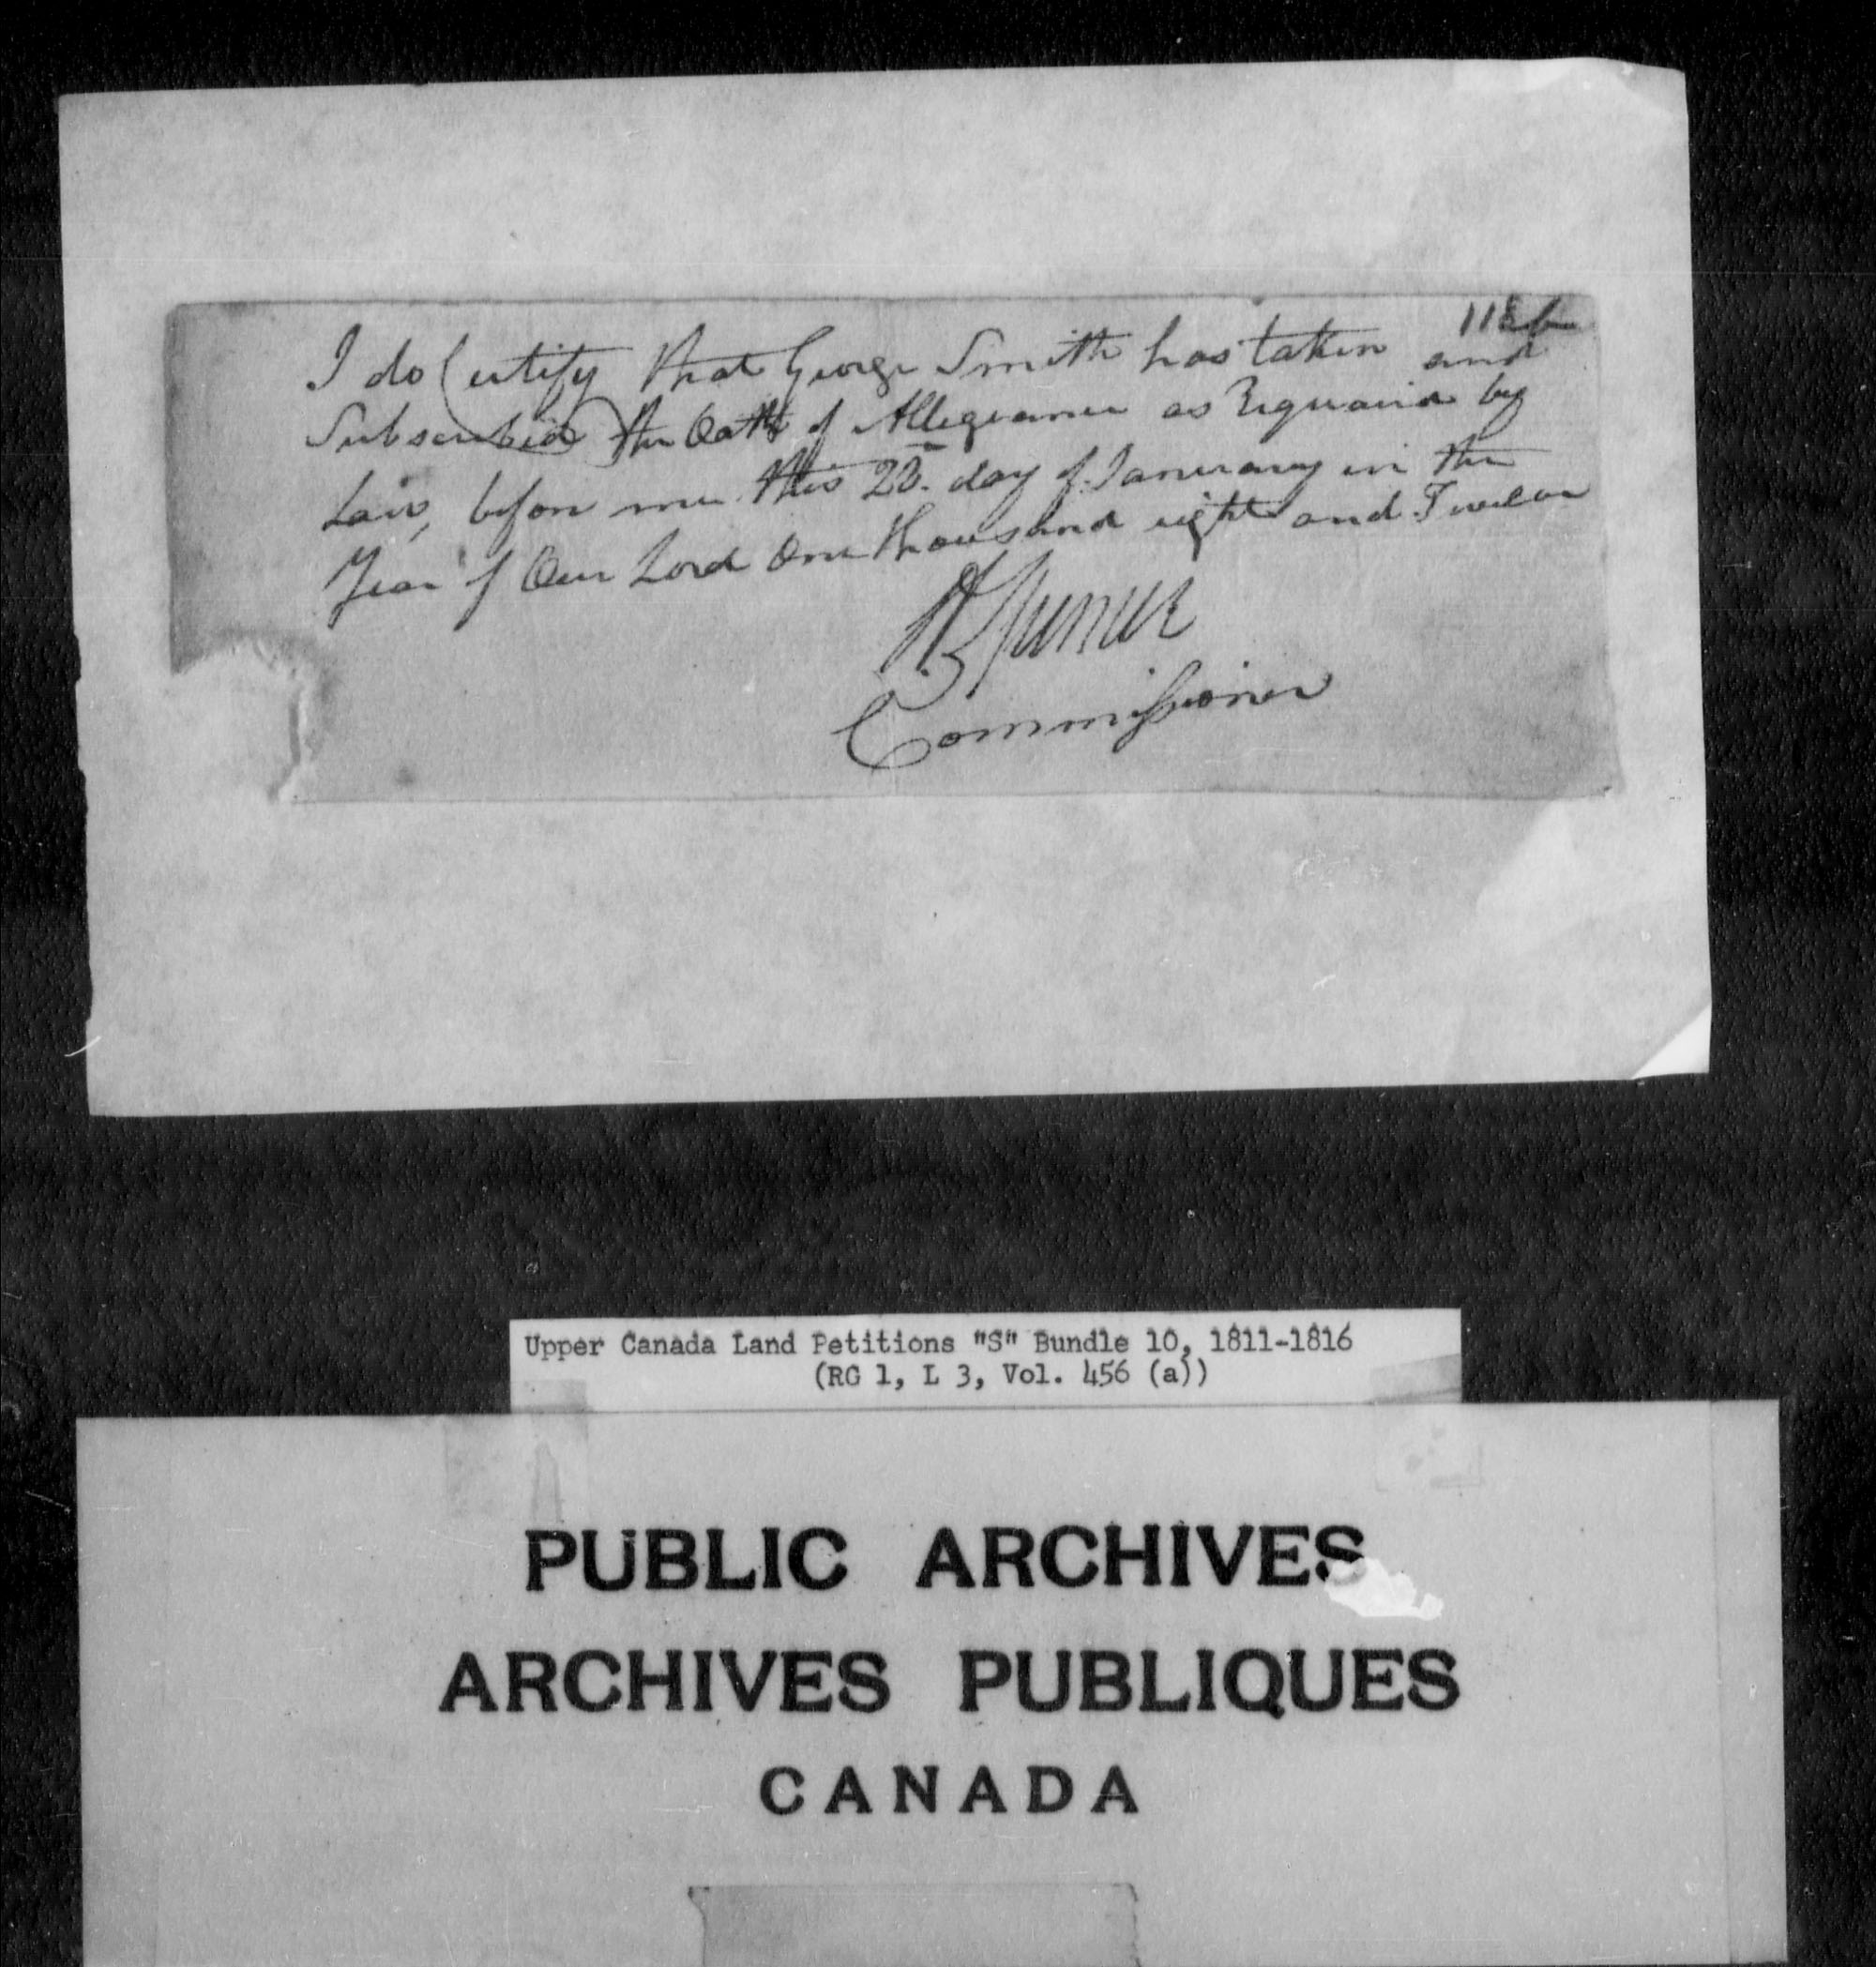 Title: Upper Canada Land Petitions (1763-1865) - Mikan Number: 205131 - Microform: c-2810